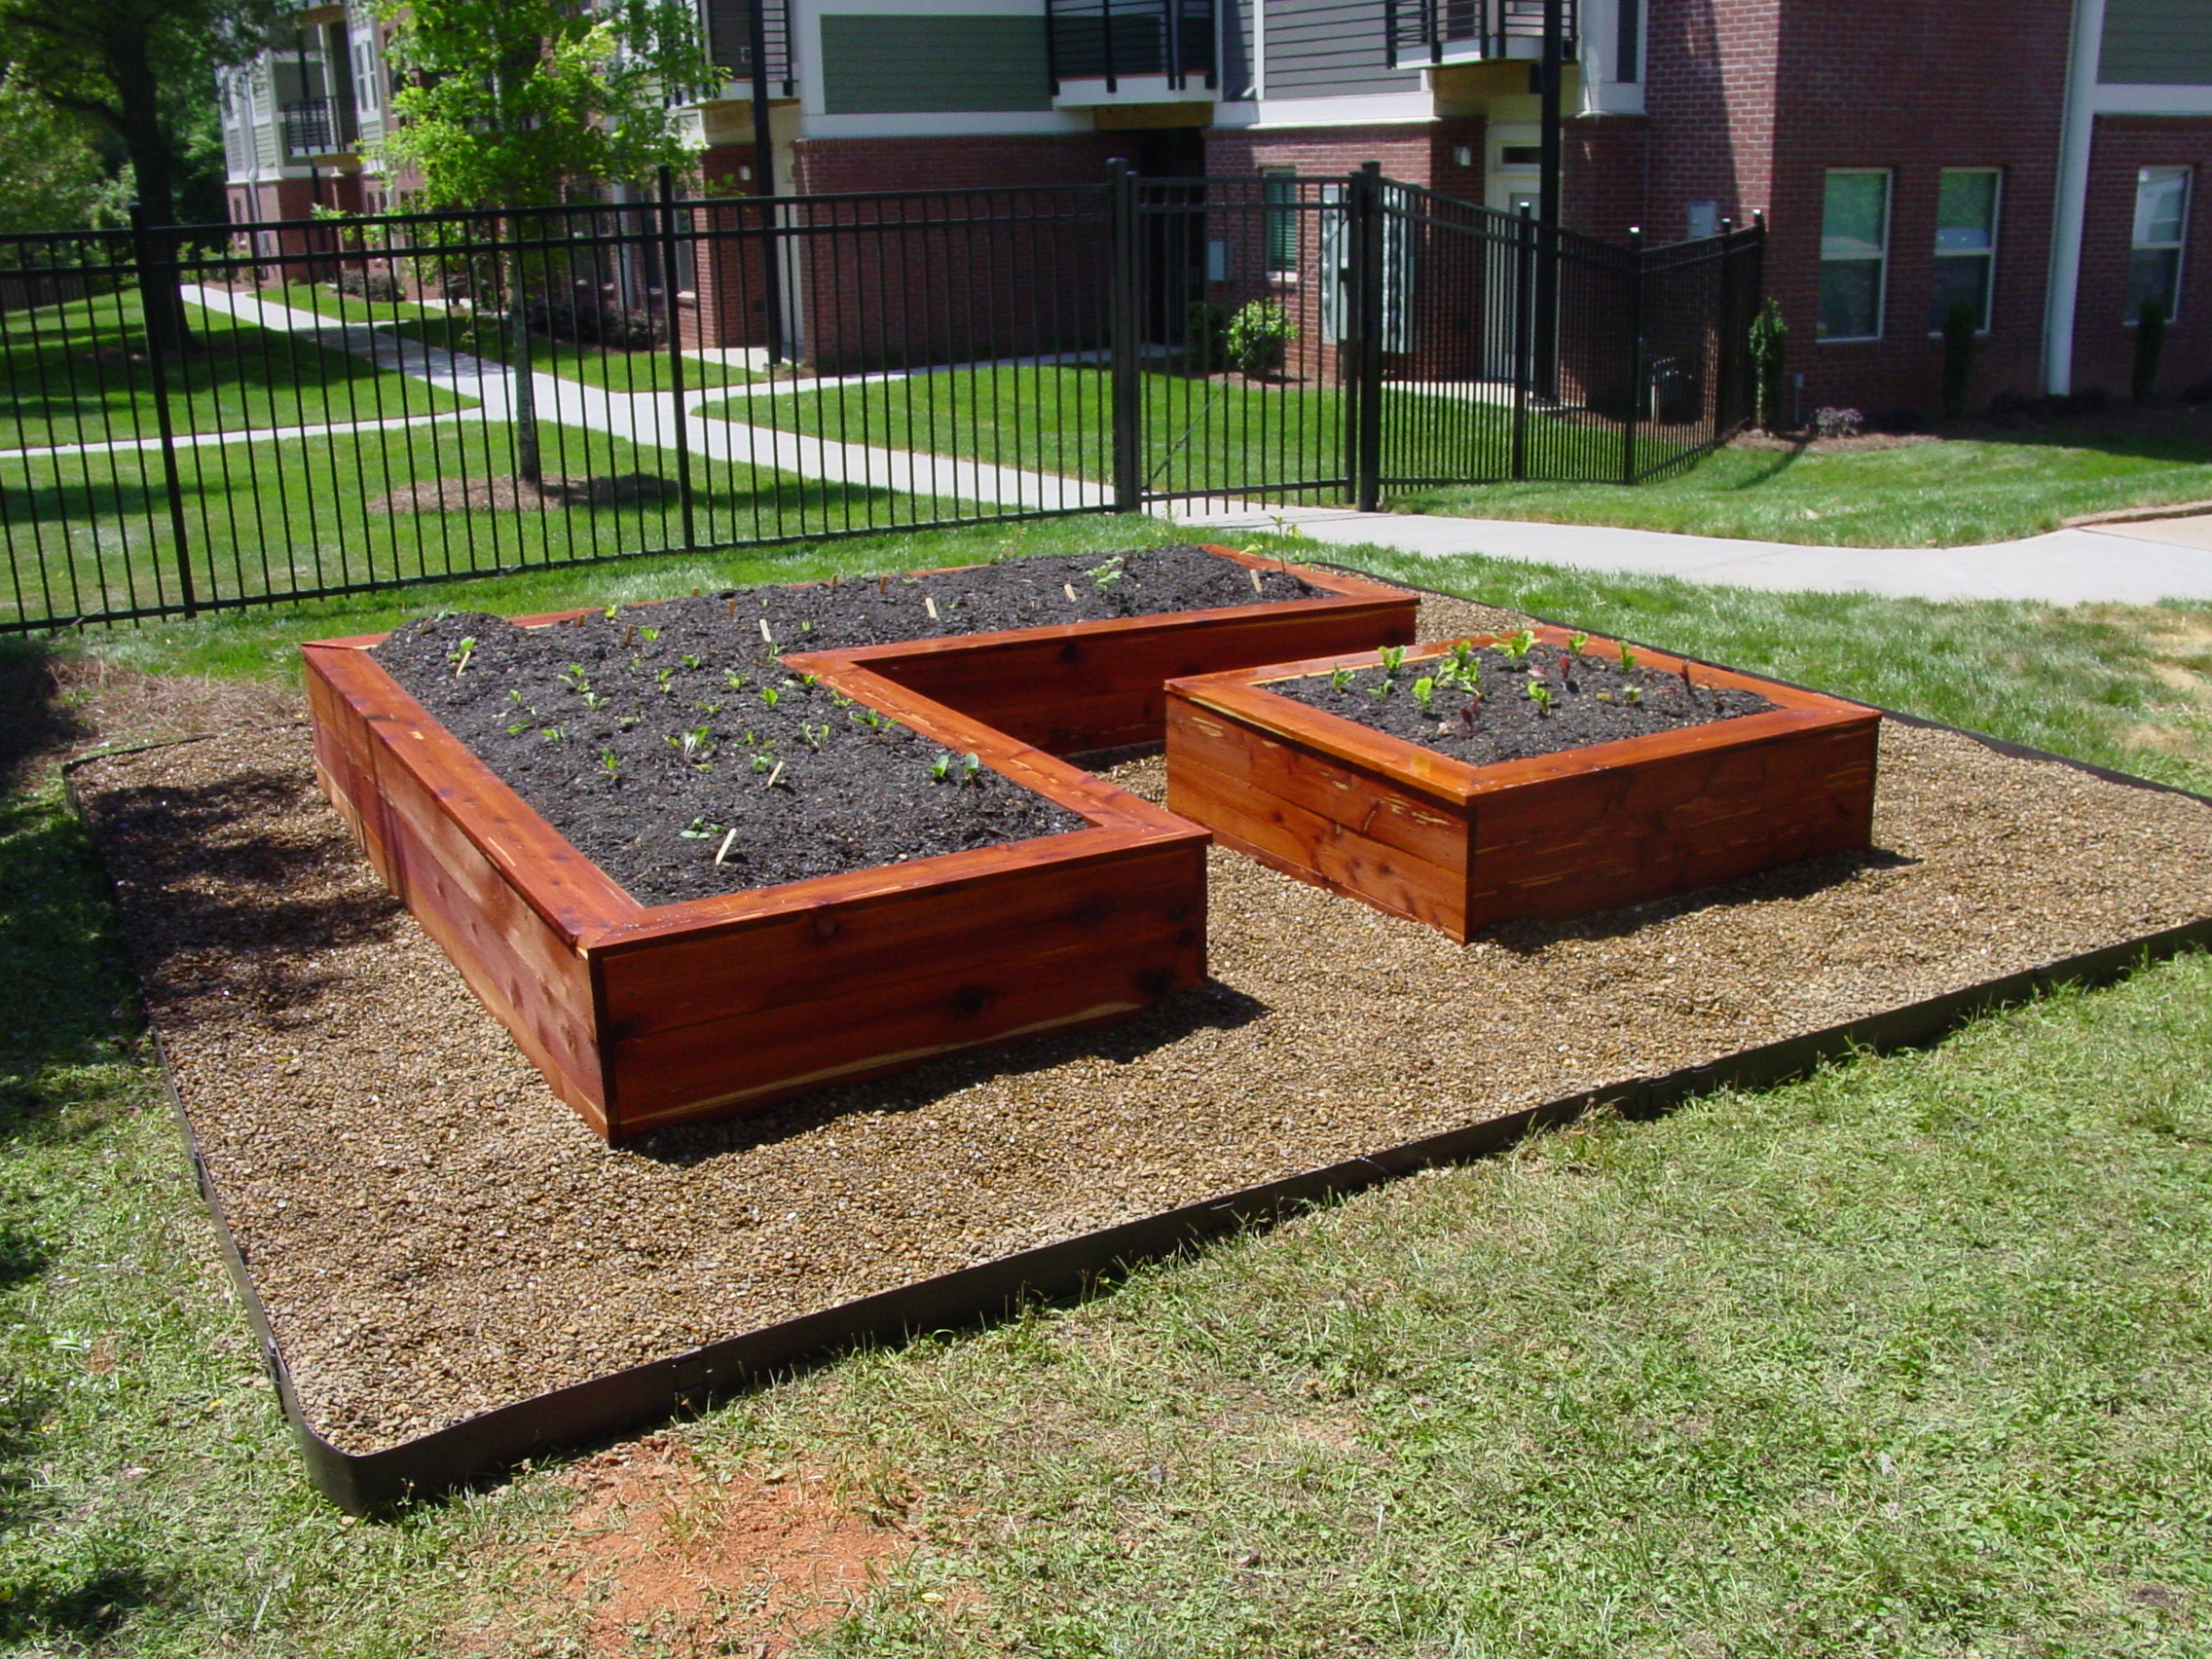 Garden Bed Designs 10 inspiring diy raised garden beds ideasplans and designs Kitchen Garden Raised Beds